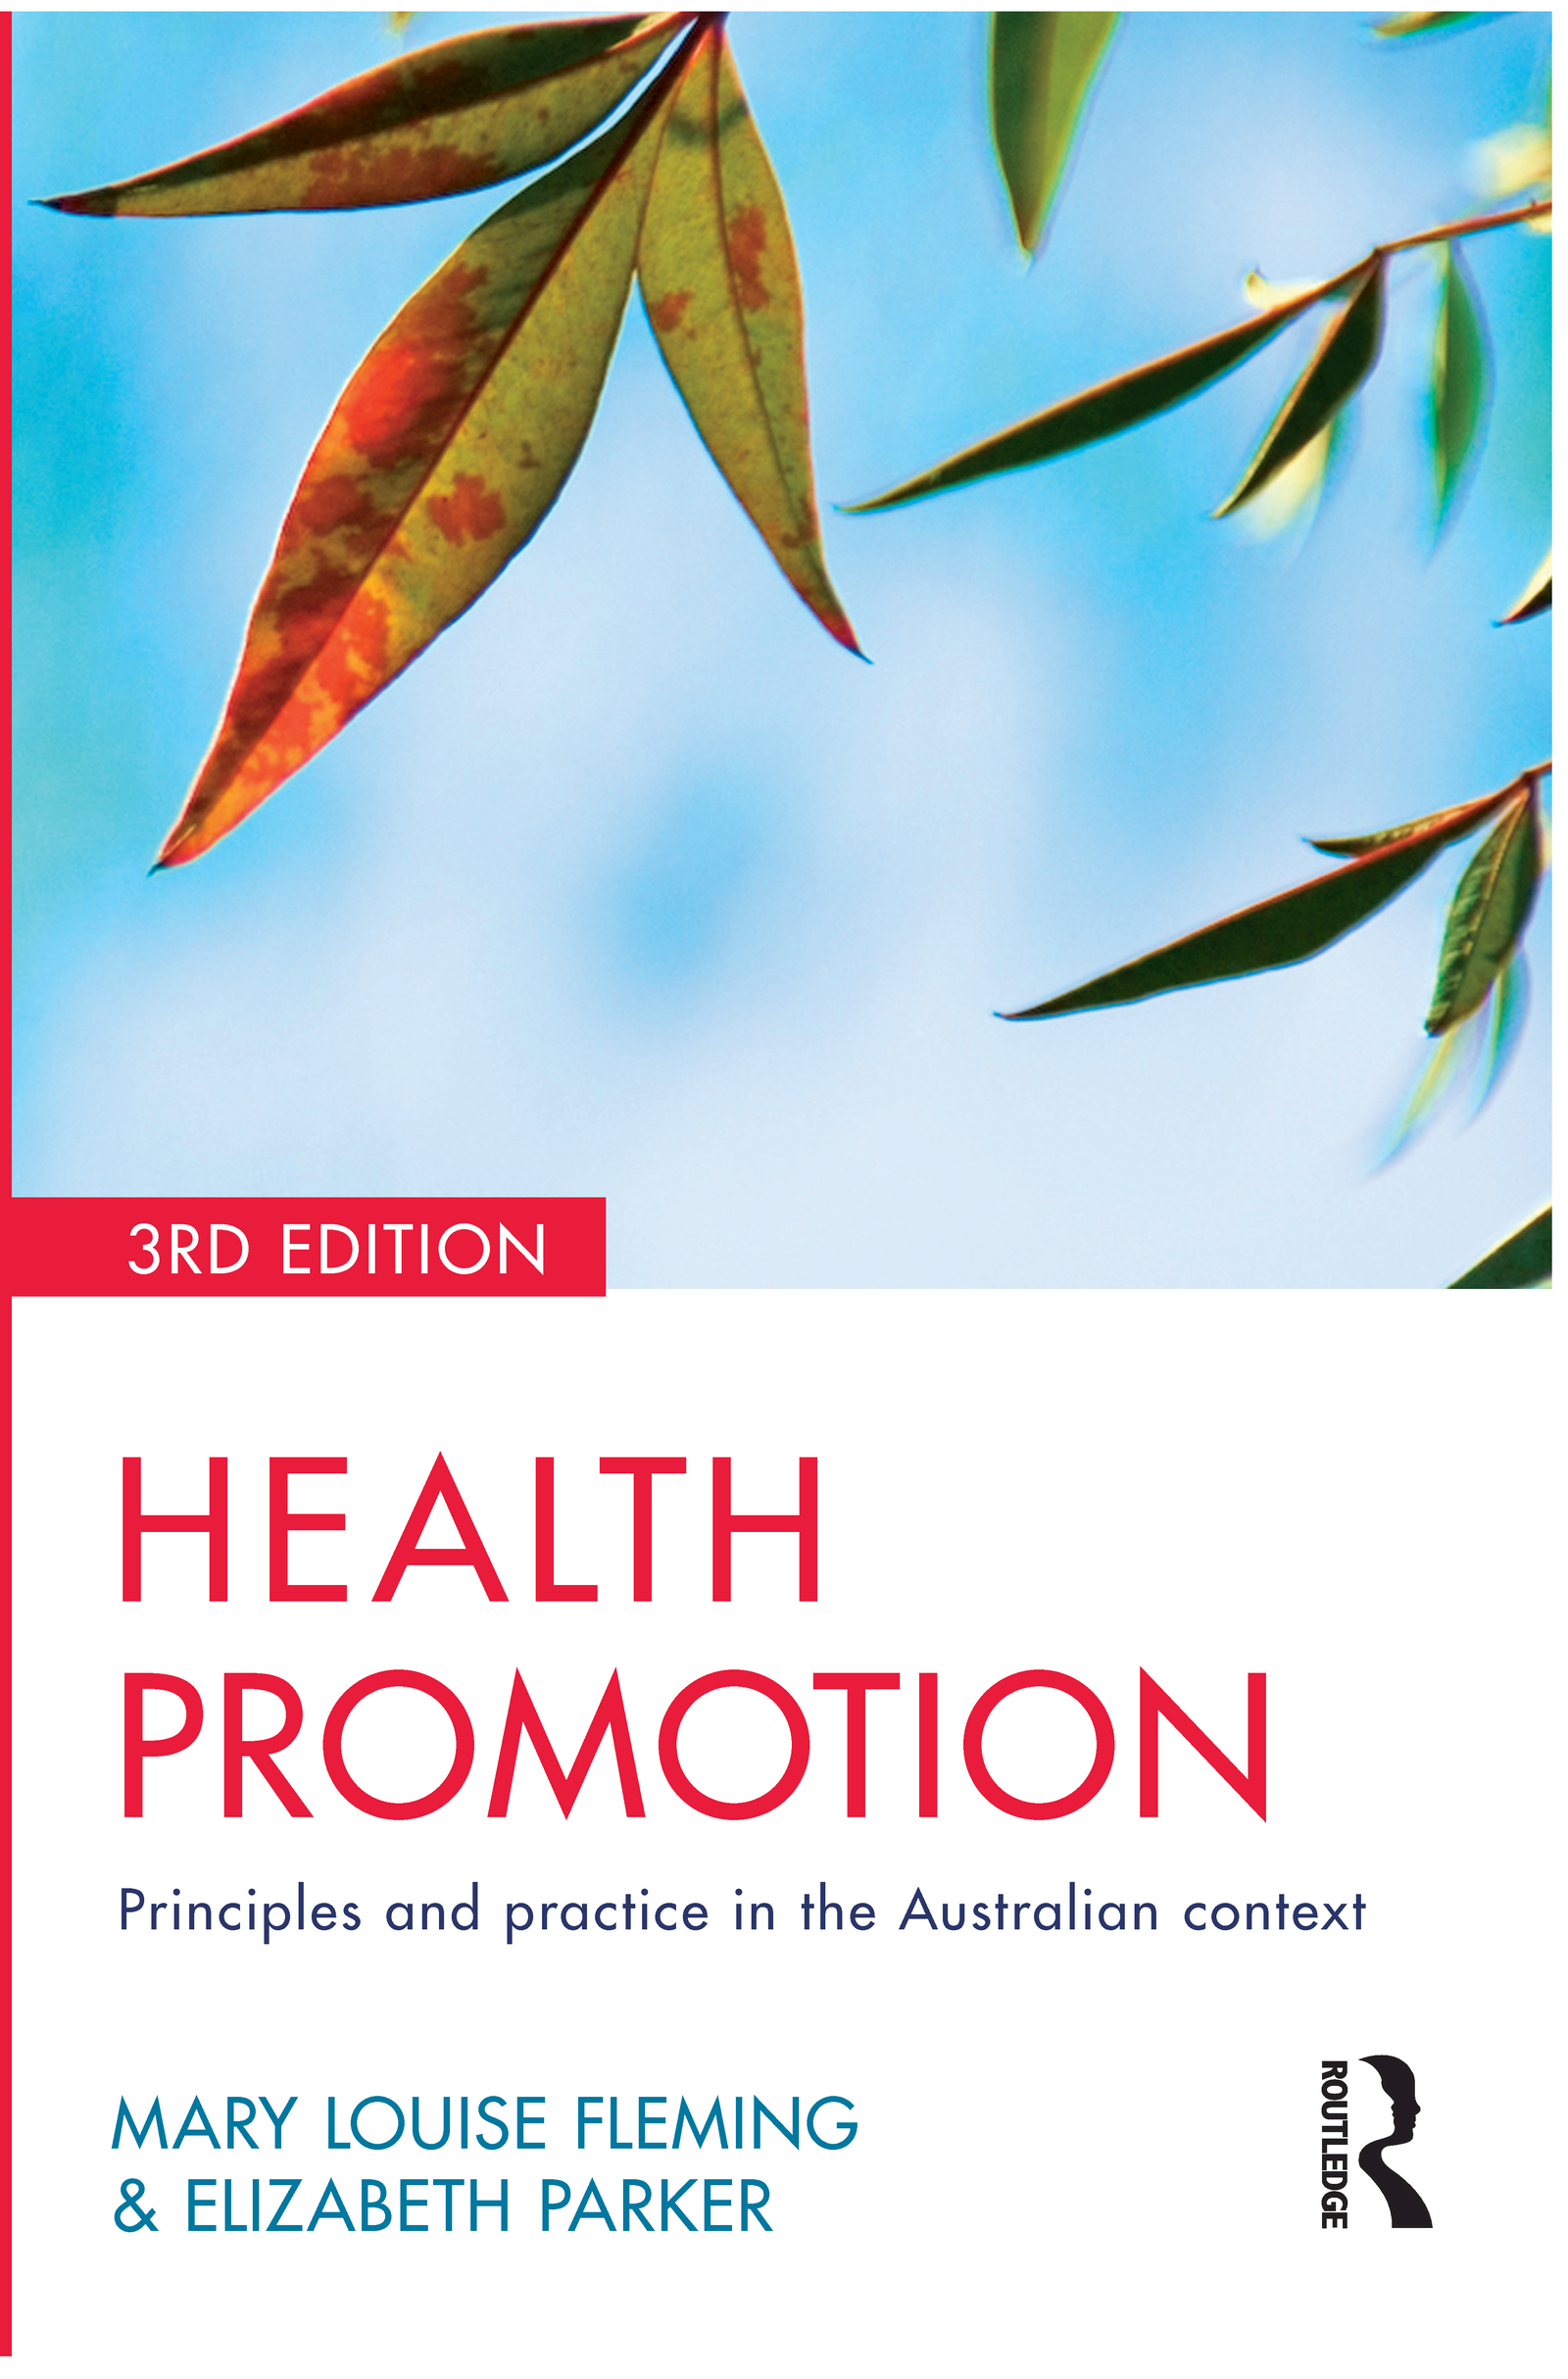 Ecological public health and health promotion